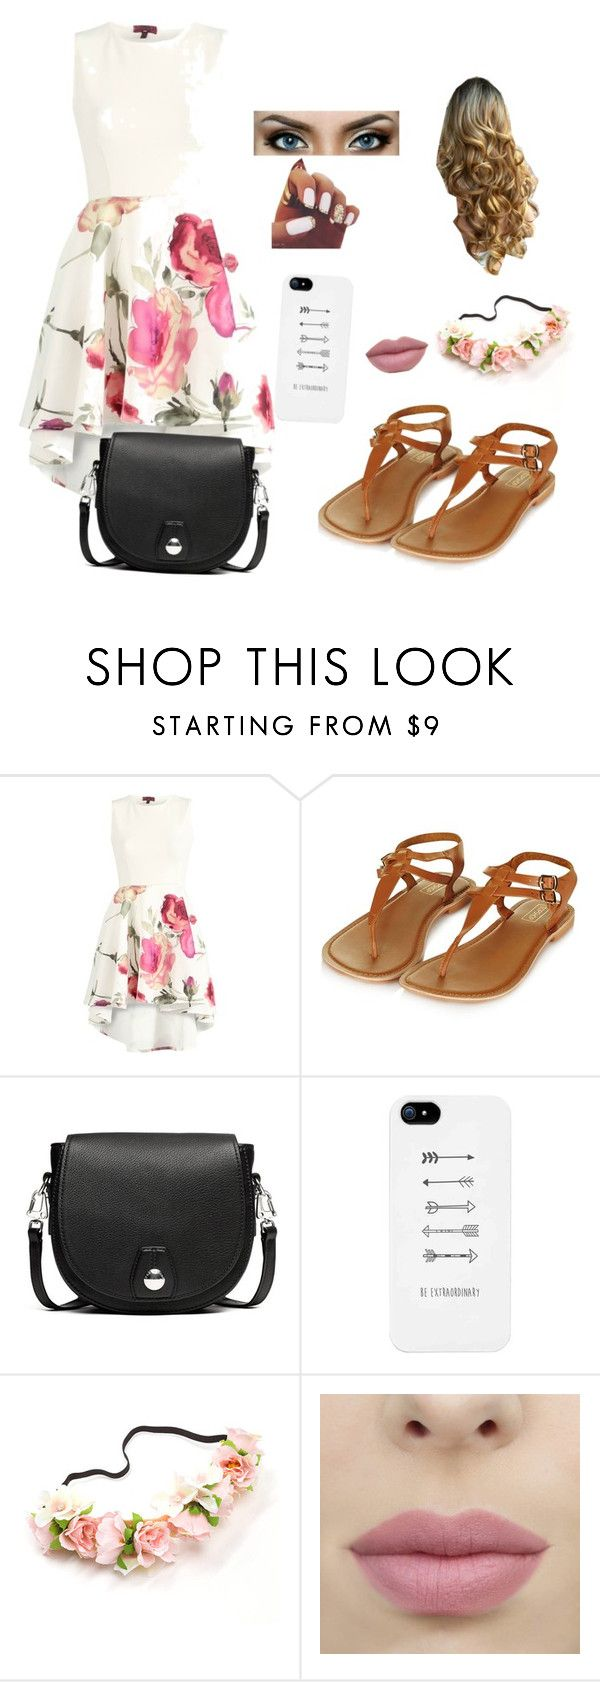 """""""Sunday church outfit"""" by mcd-2004 ❤ liked on Polyvore featuring rag & bone"""